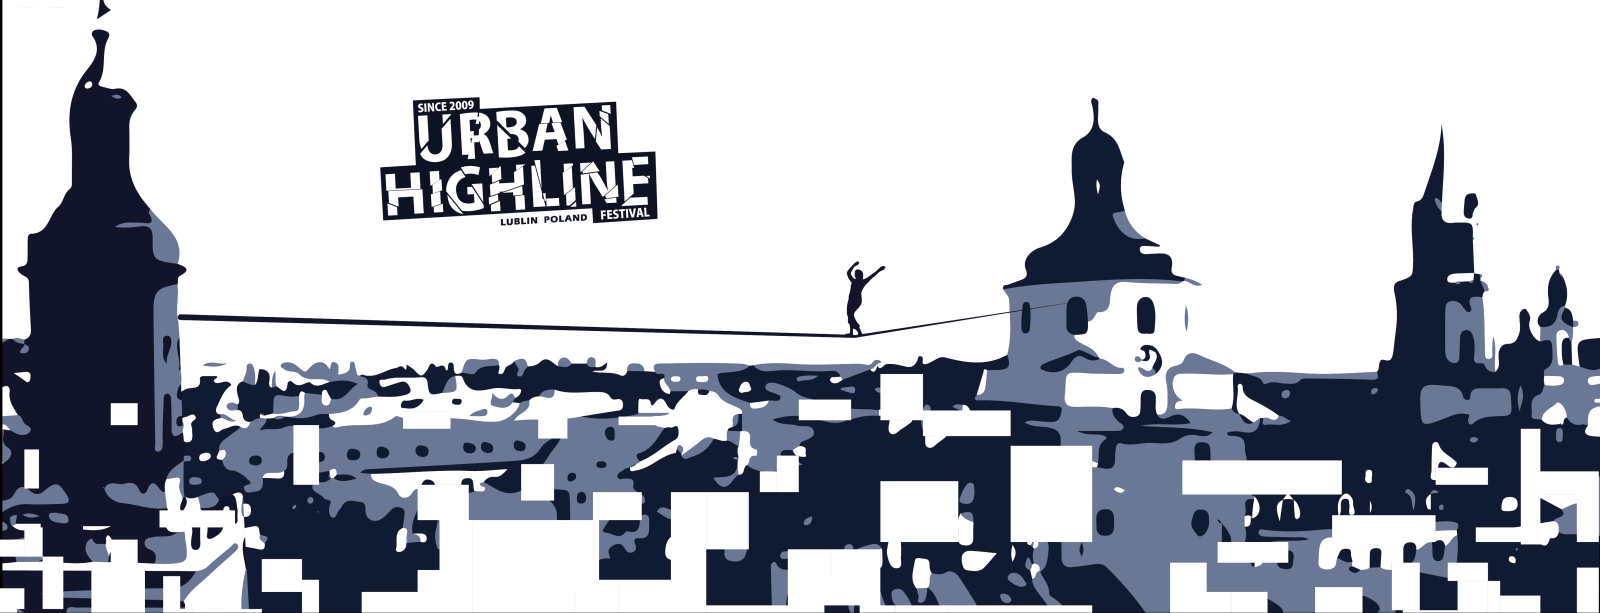 Urban Highline Festival official site | Lublin, Poland | UHF 2017